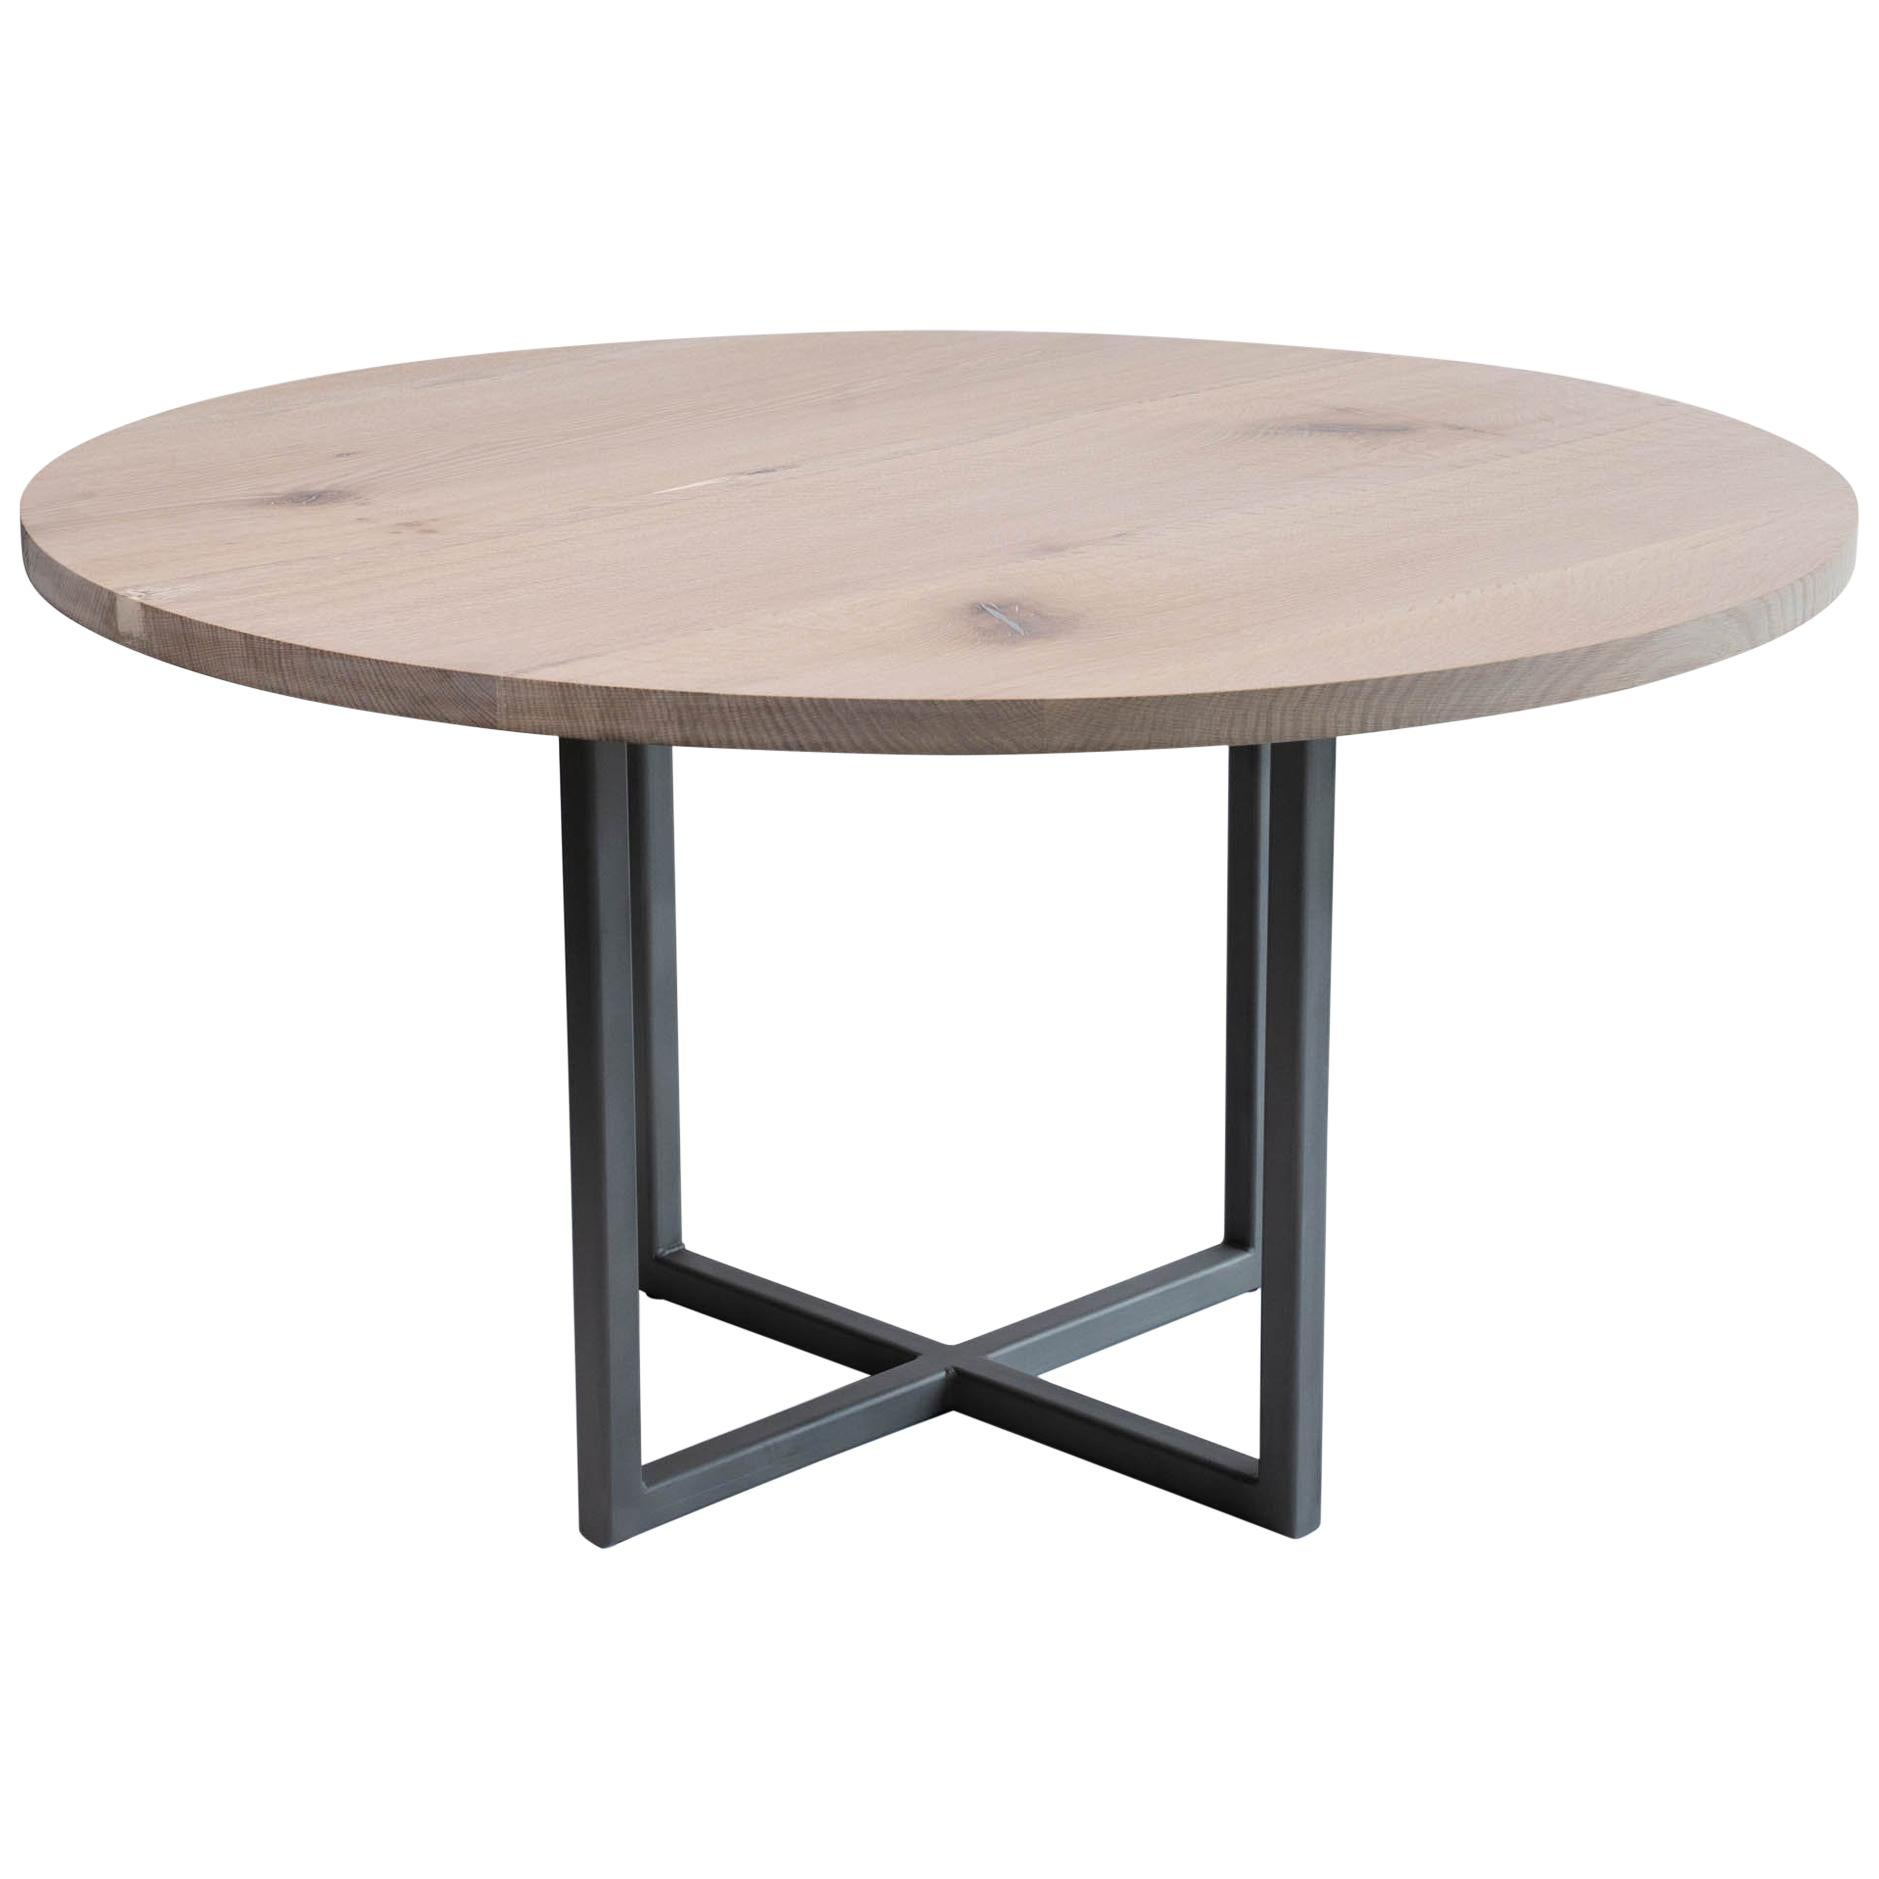 """54"""" Round Dining Table in White Oak and Pewter Inlays Modern Steel Pedestal Base"""